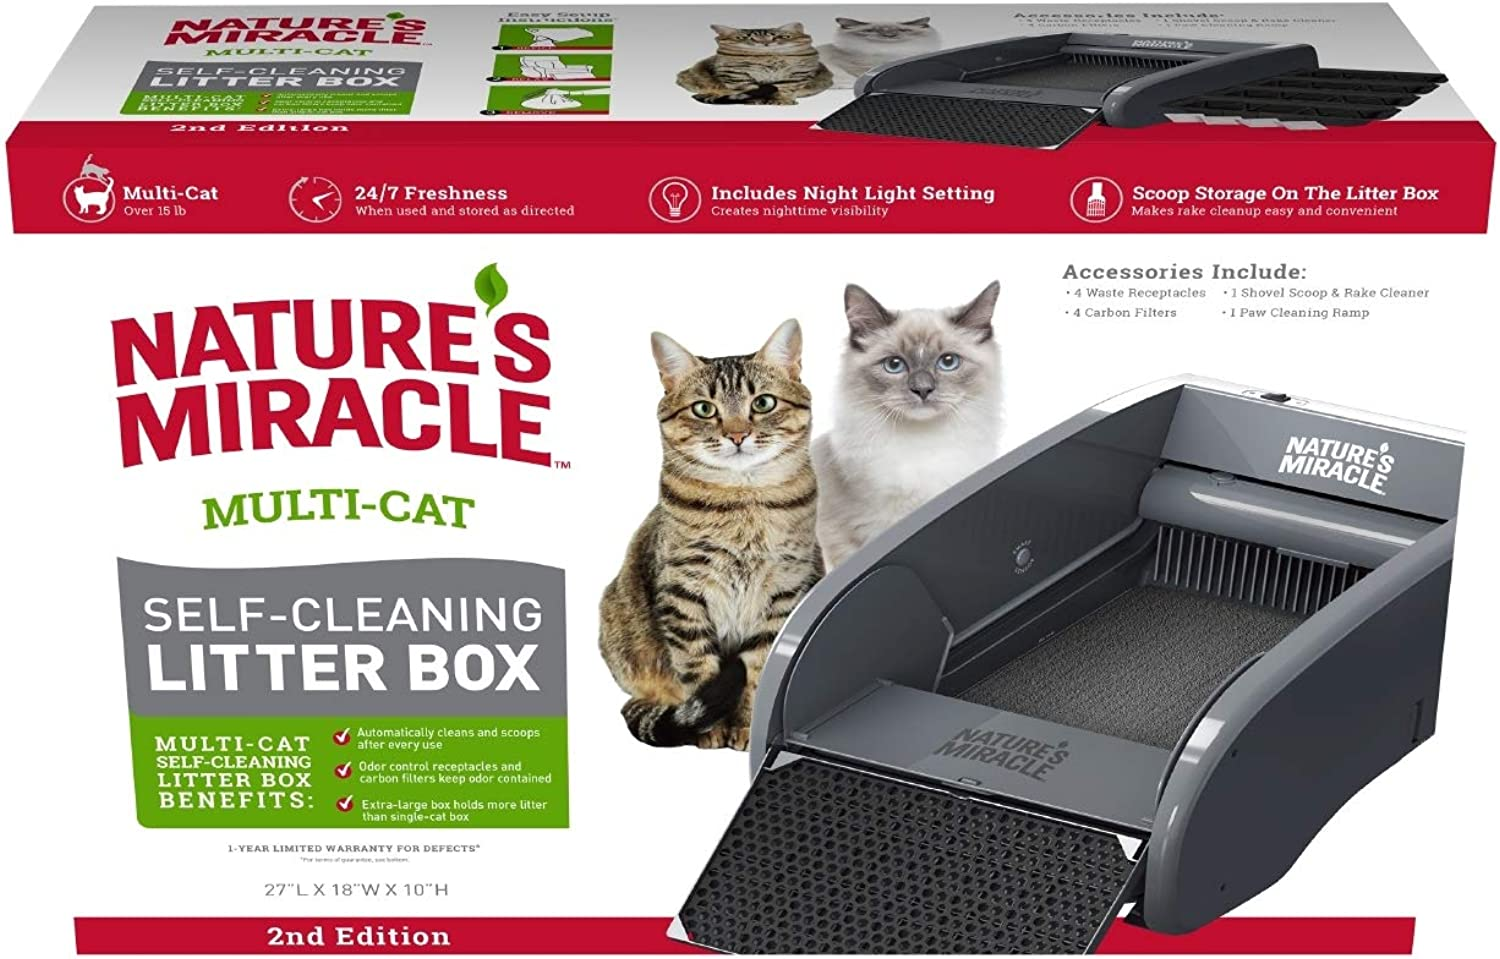 Nature's Miracle Nature's Miracle MultiCat SelfCleaning Litter Box